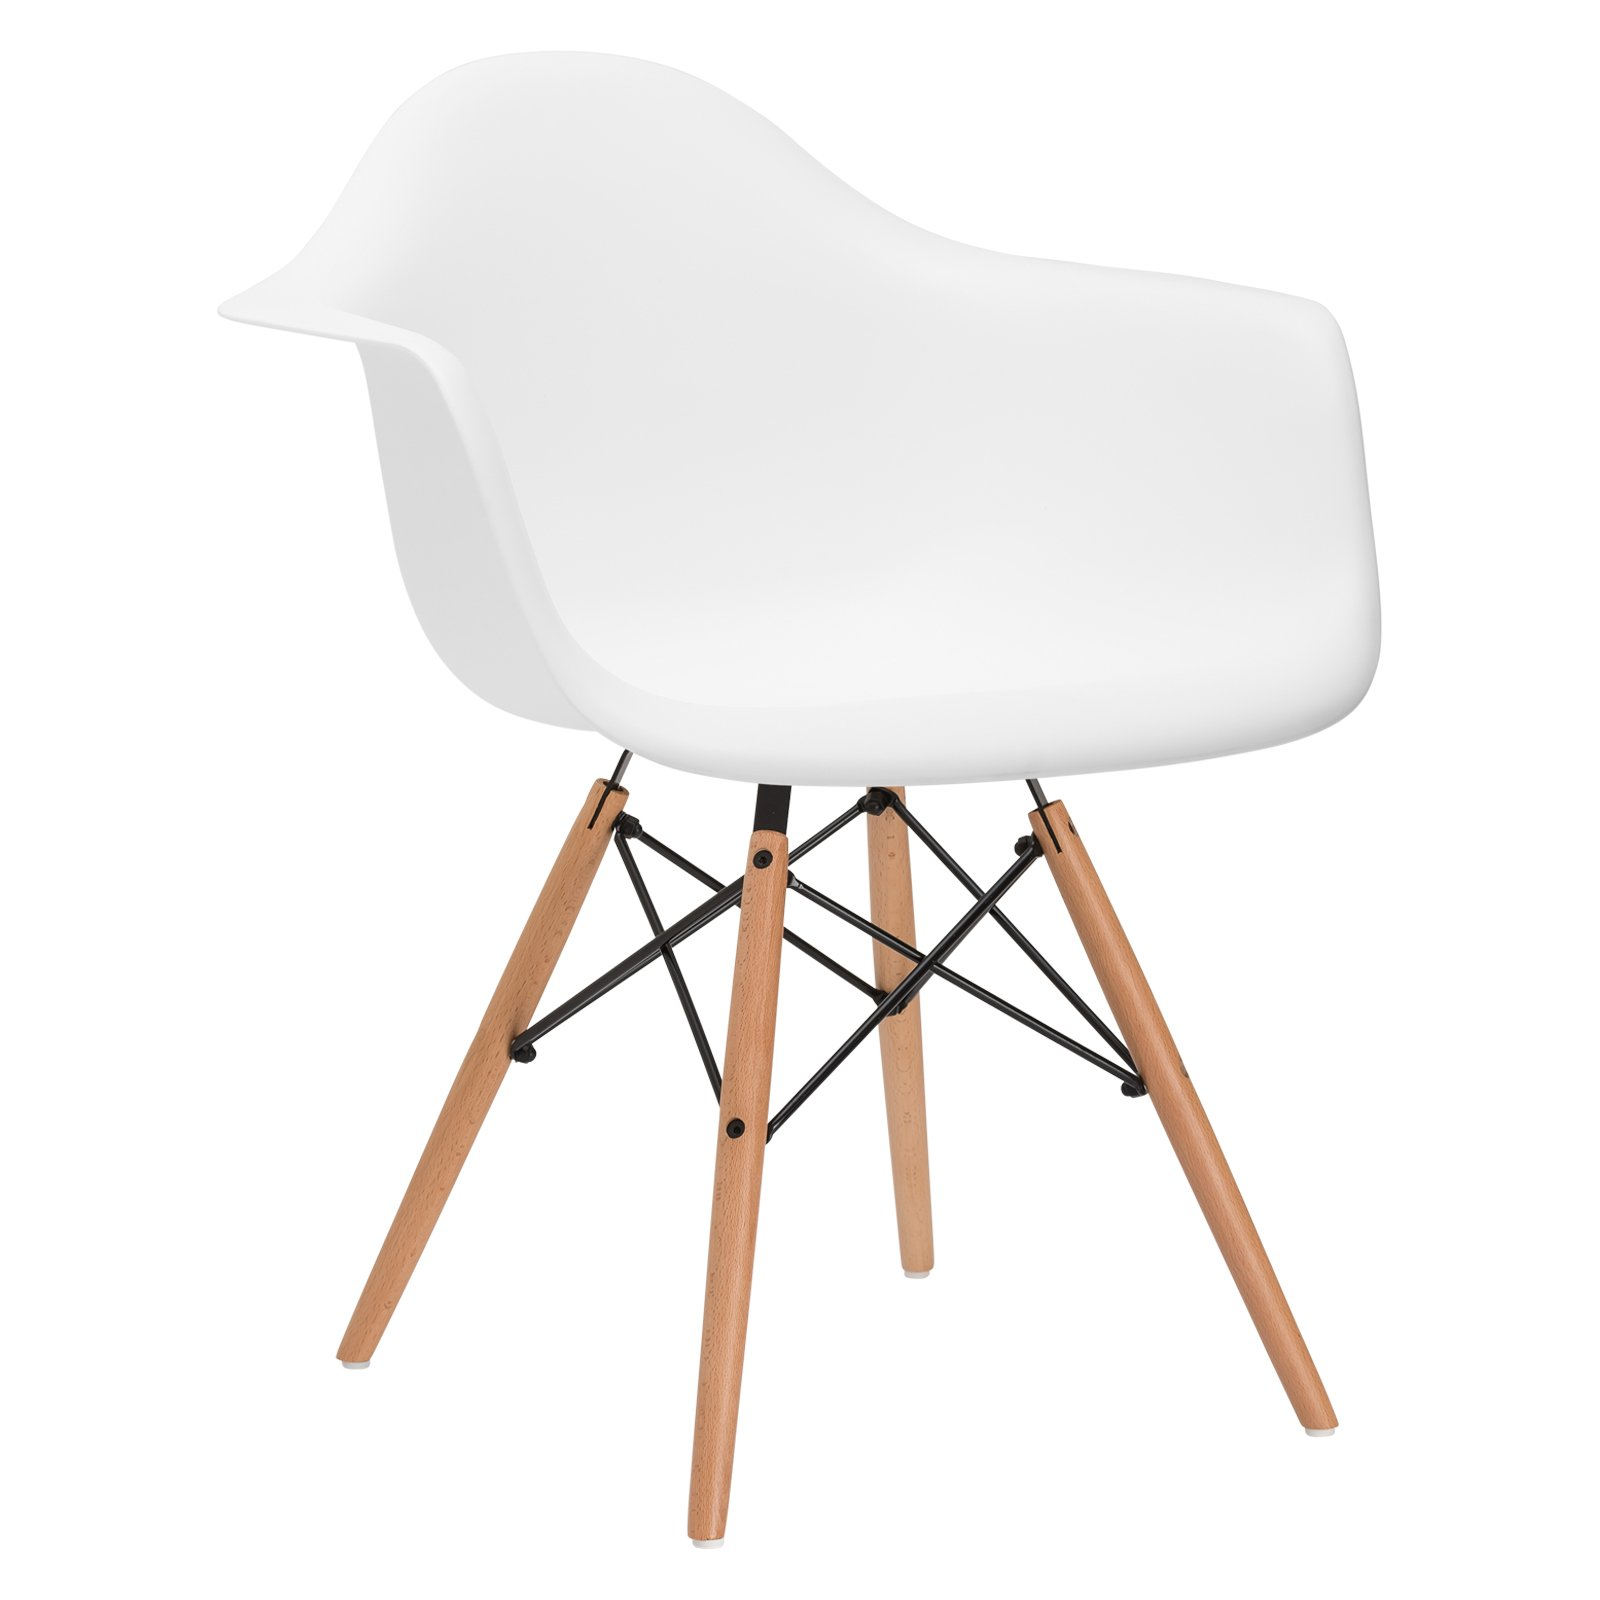 Poly and Bark Vortex Arm Chair, White by POLY & BARK